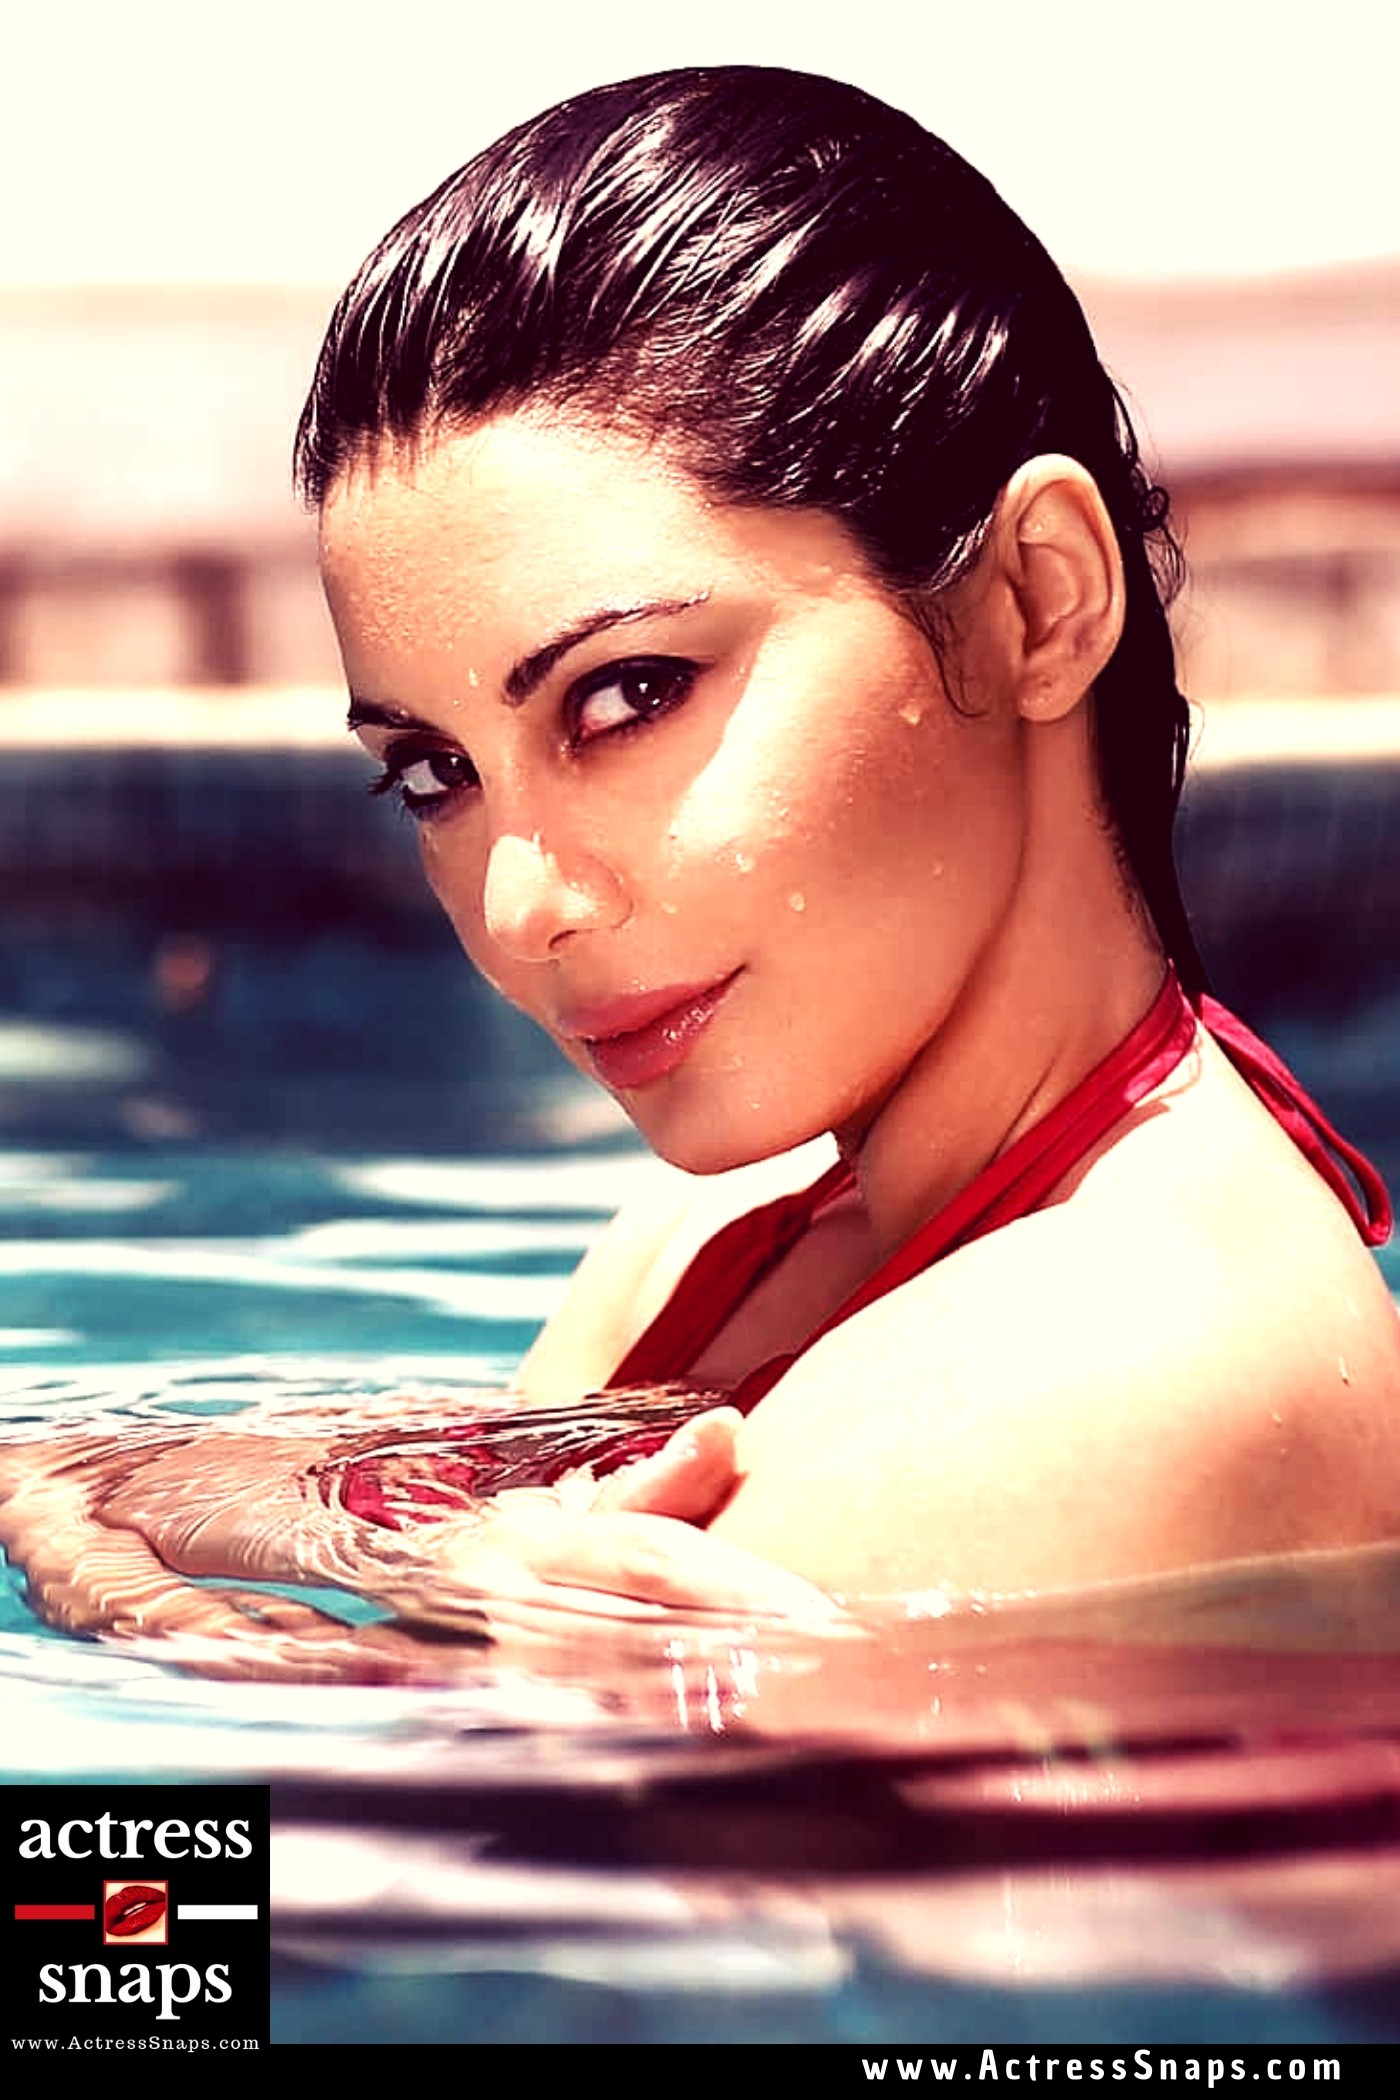 Sexy Minissha Lamba Bikini Photos - Sexy Actress Pictures | Hot Actress Pictures - ActressSnaps.com